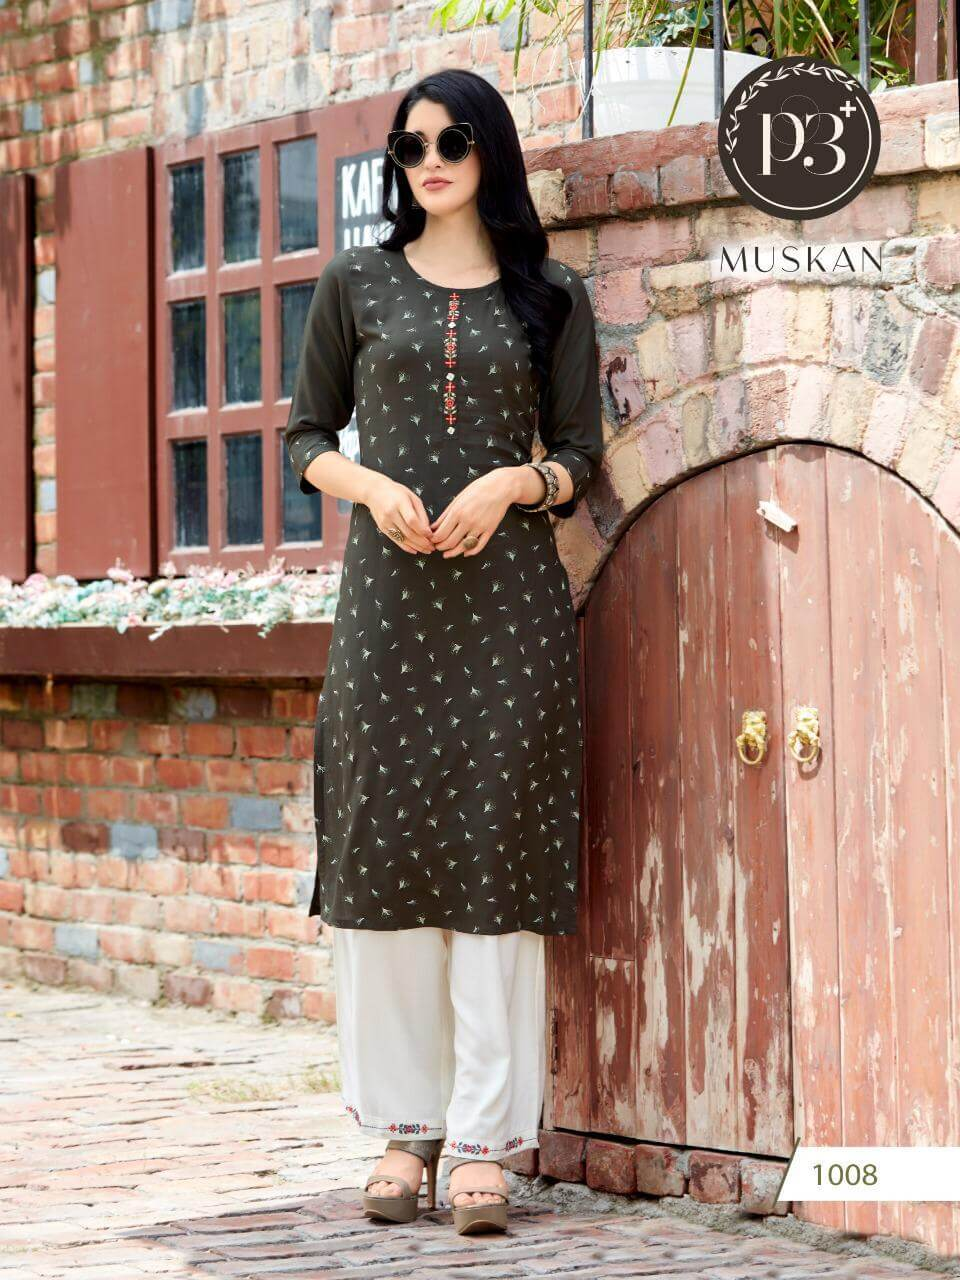 P3 Muskan collection 5